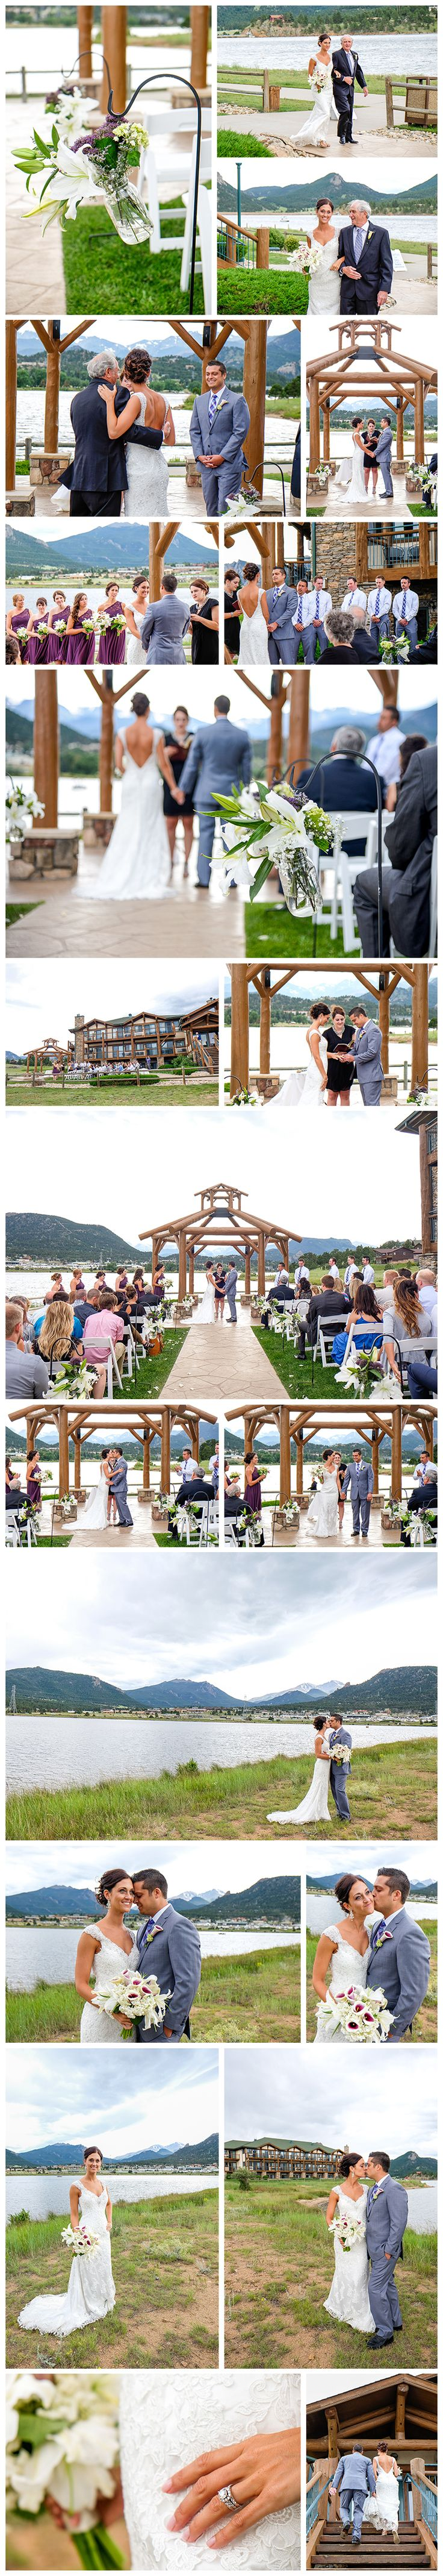 Lynn and Jim had a wonderful Estes Park Resort Wedding. Their nuptials took place by Lake Estes in Estes Park Colorado on a beautiful summer day on the lake